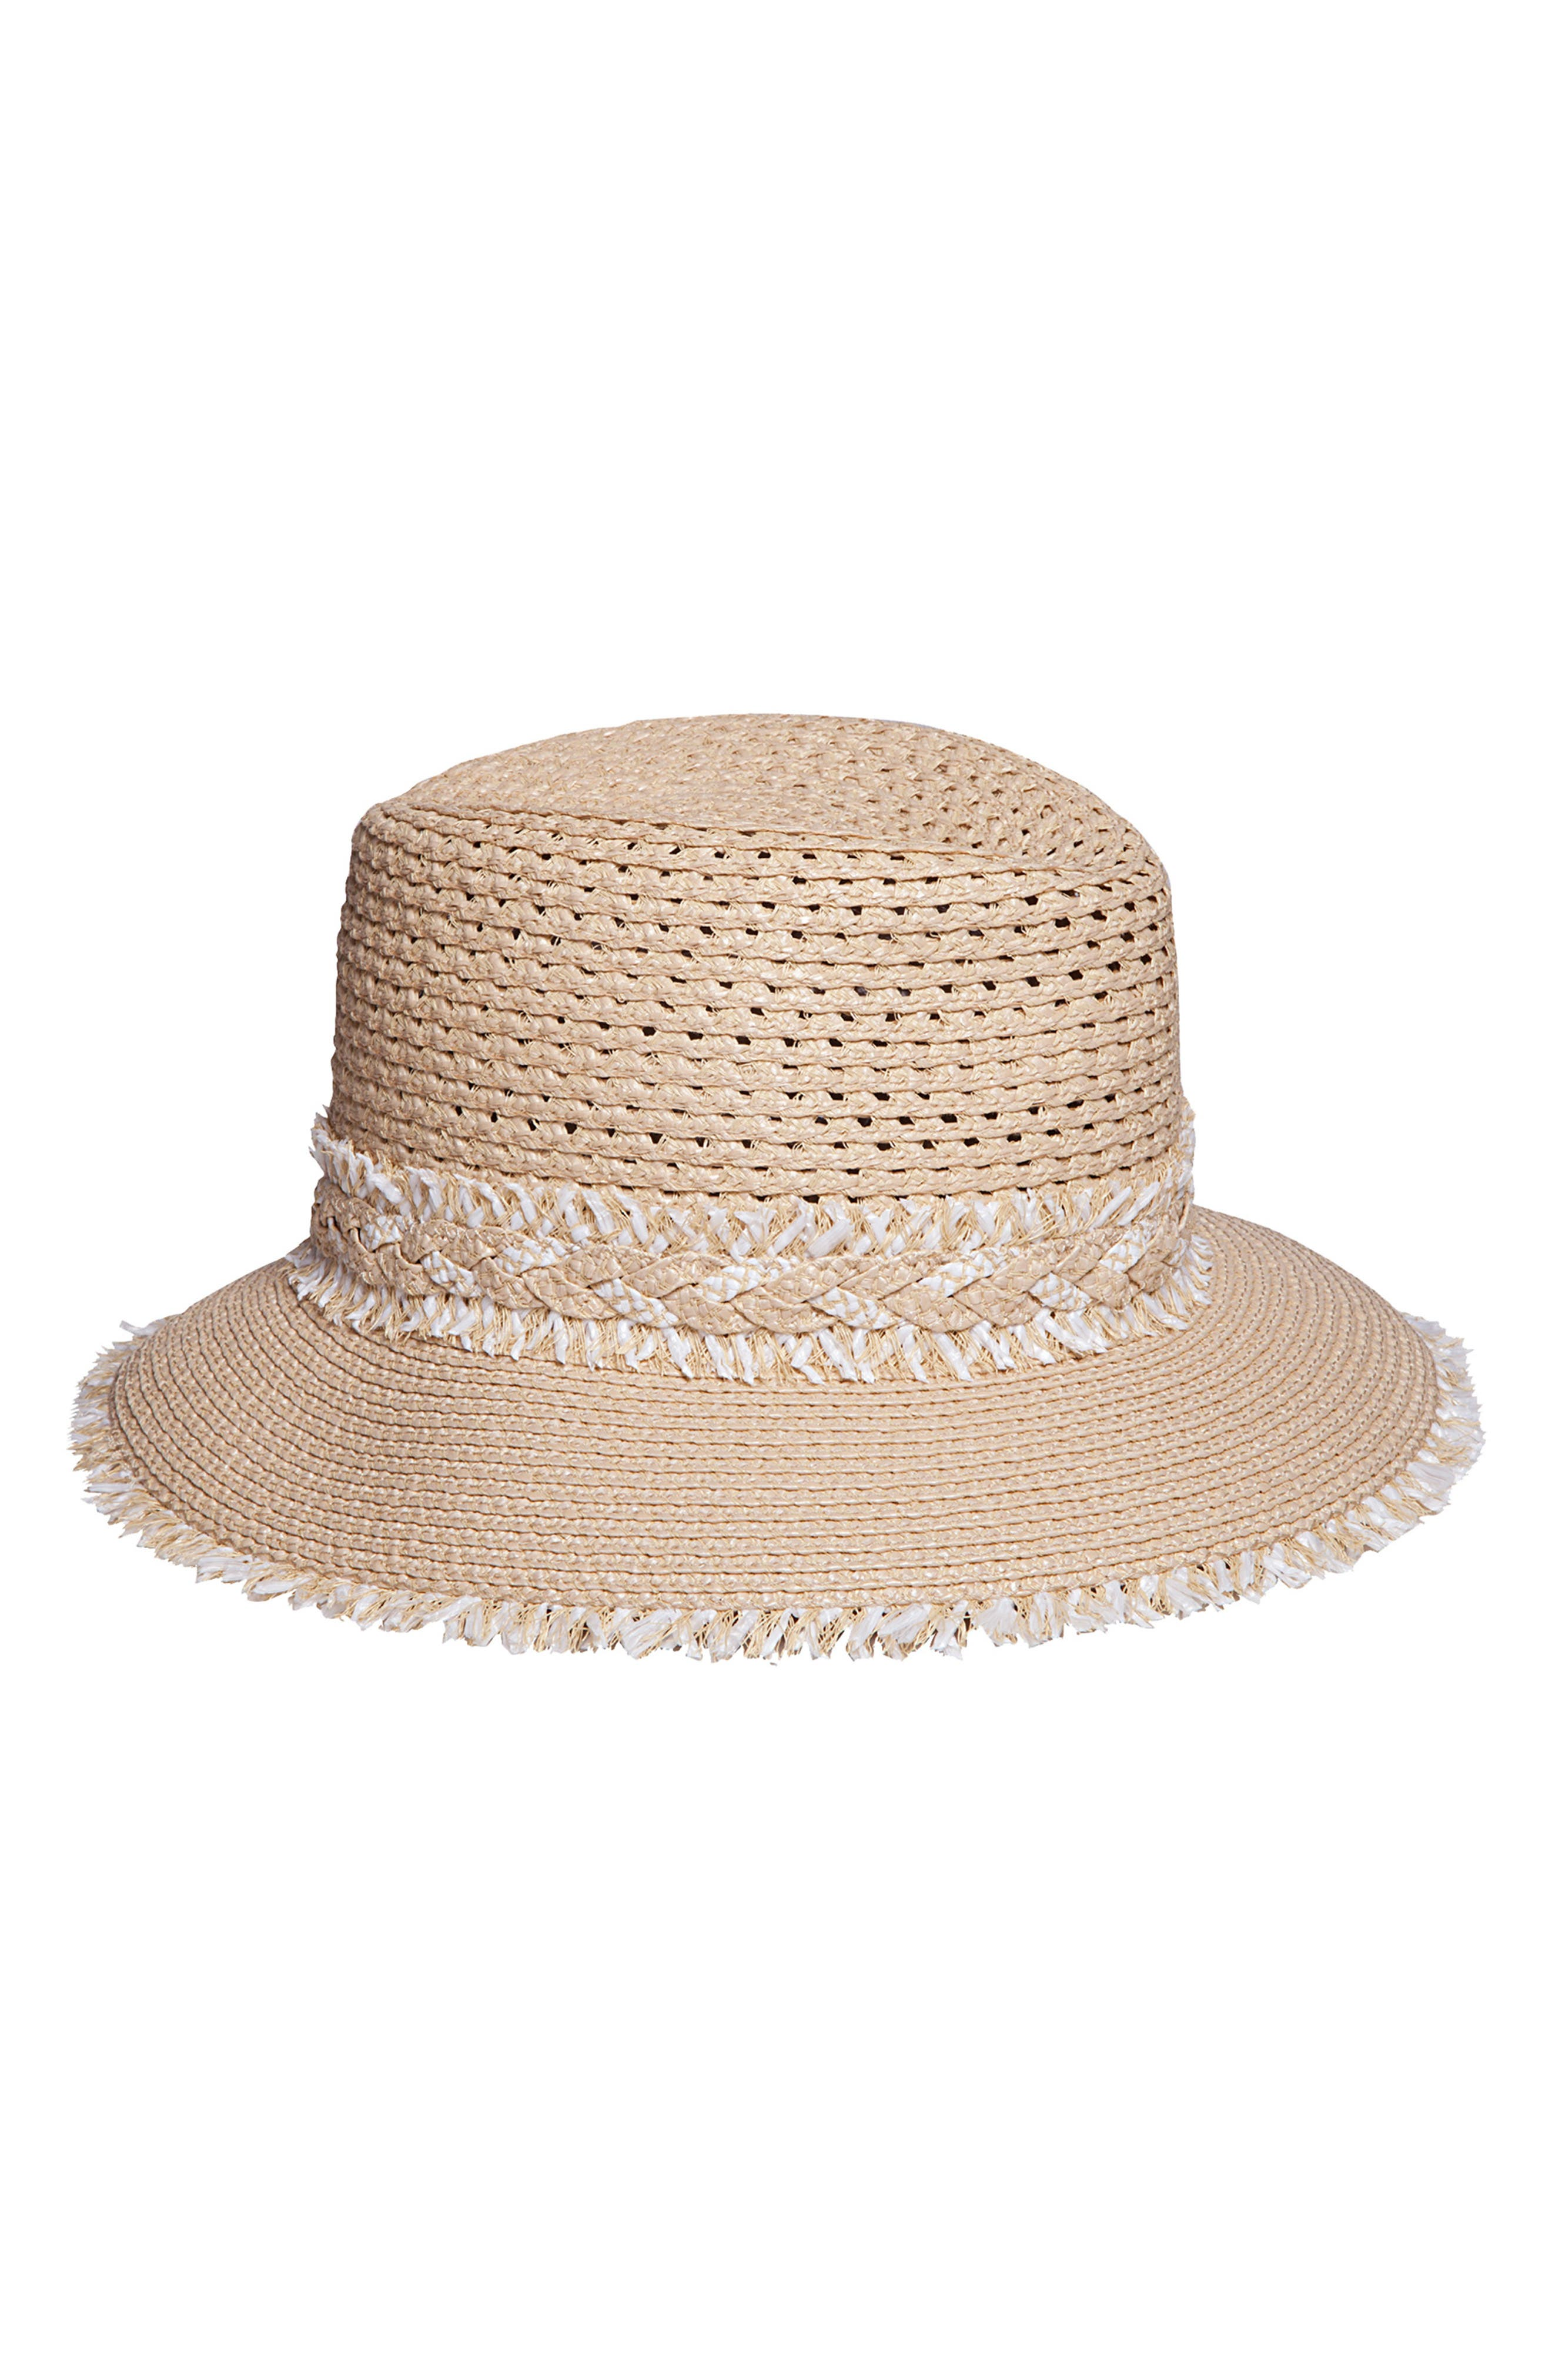 Lulu Squishee<sup>®</sup> Straw Hat,                             Main thumbnail 1, color,                             200